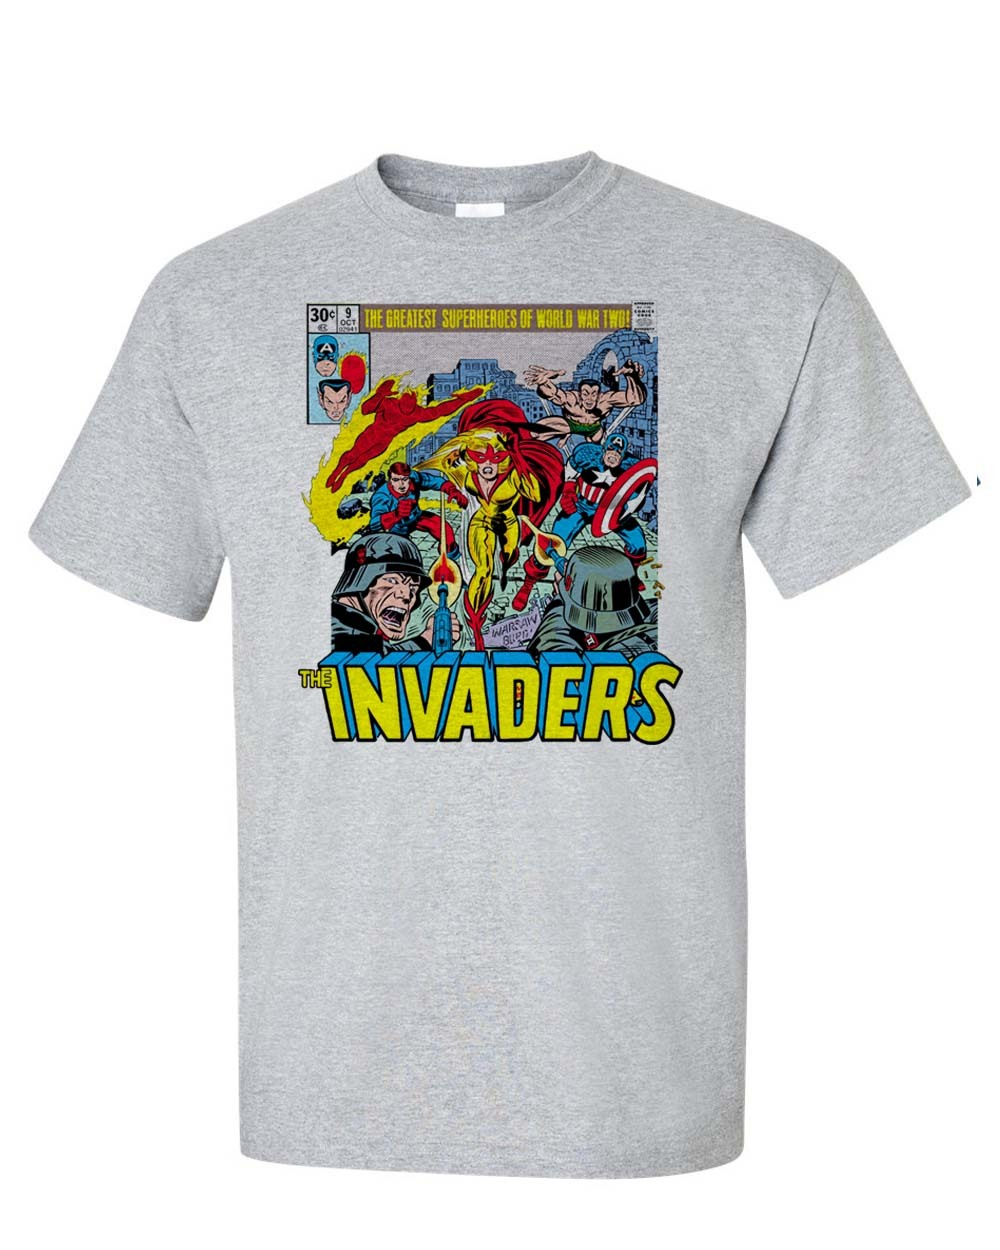 bucky world war 2 graphic tee retro golden age old school comic book tees for sale online store